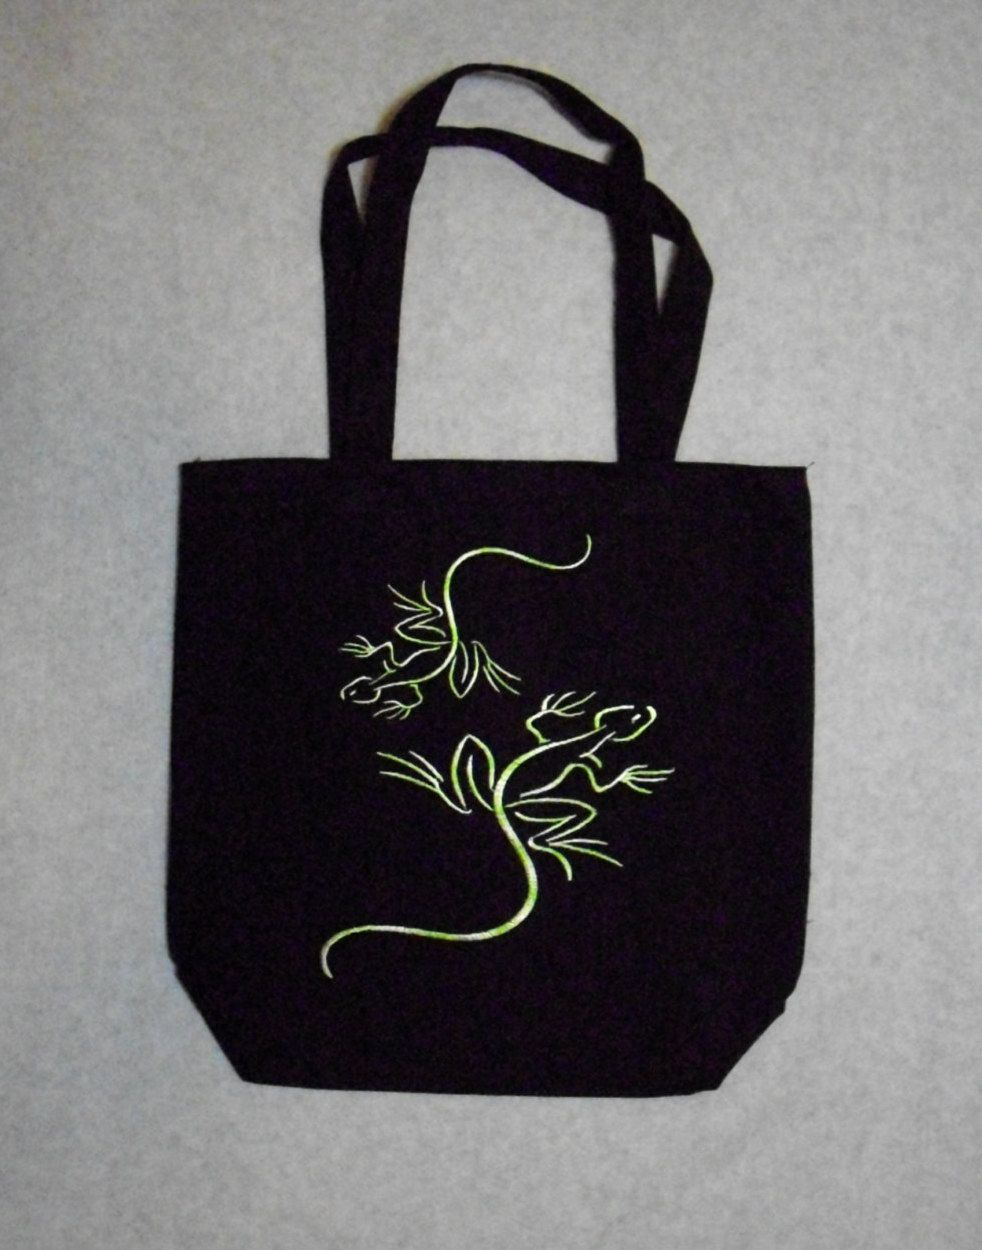 Tote Bag Lizards Tote Bag with Variegated Green Thread. Durable!